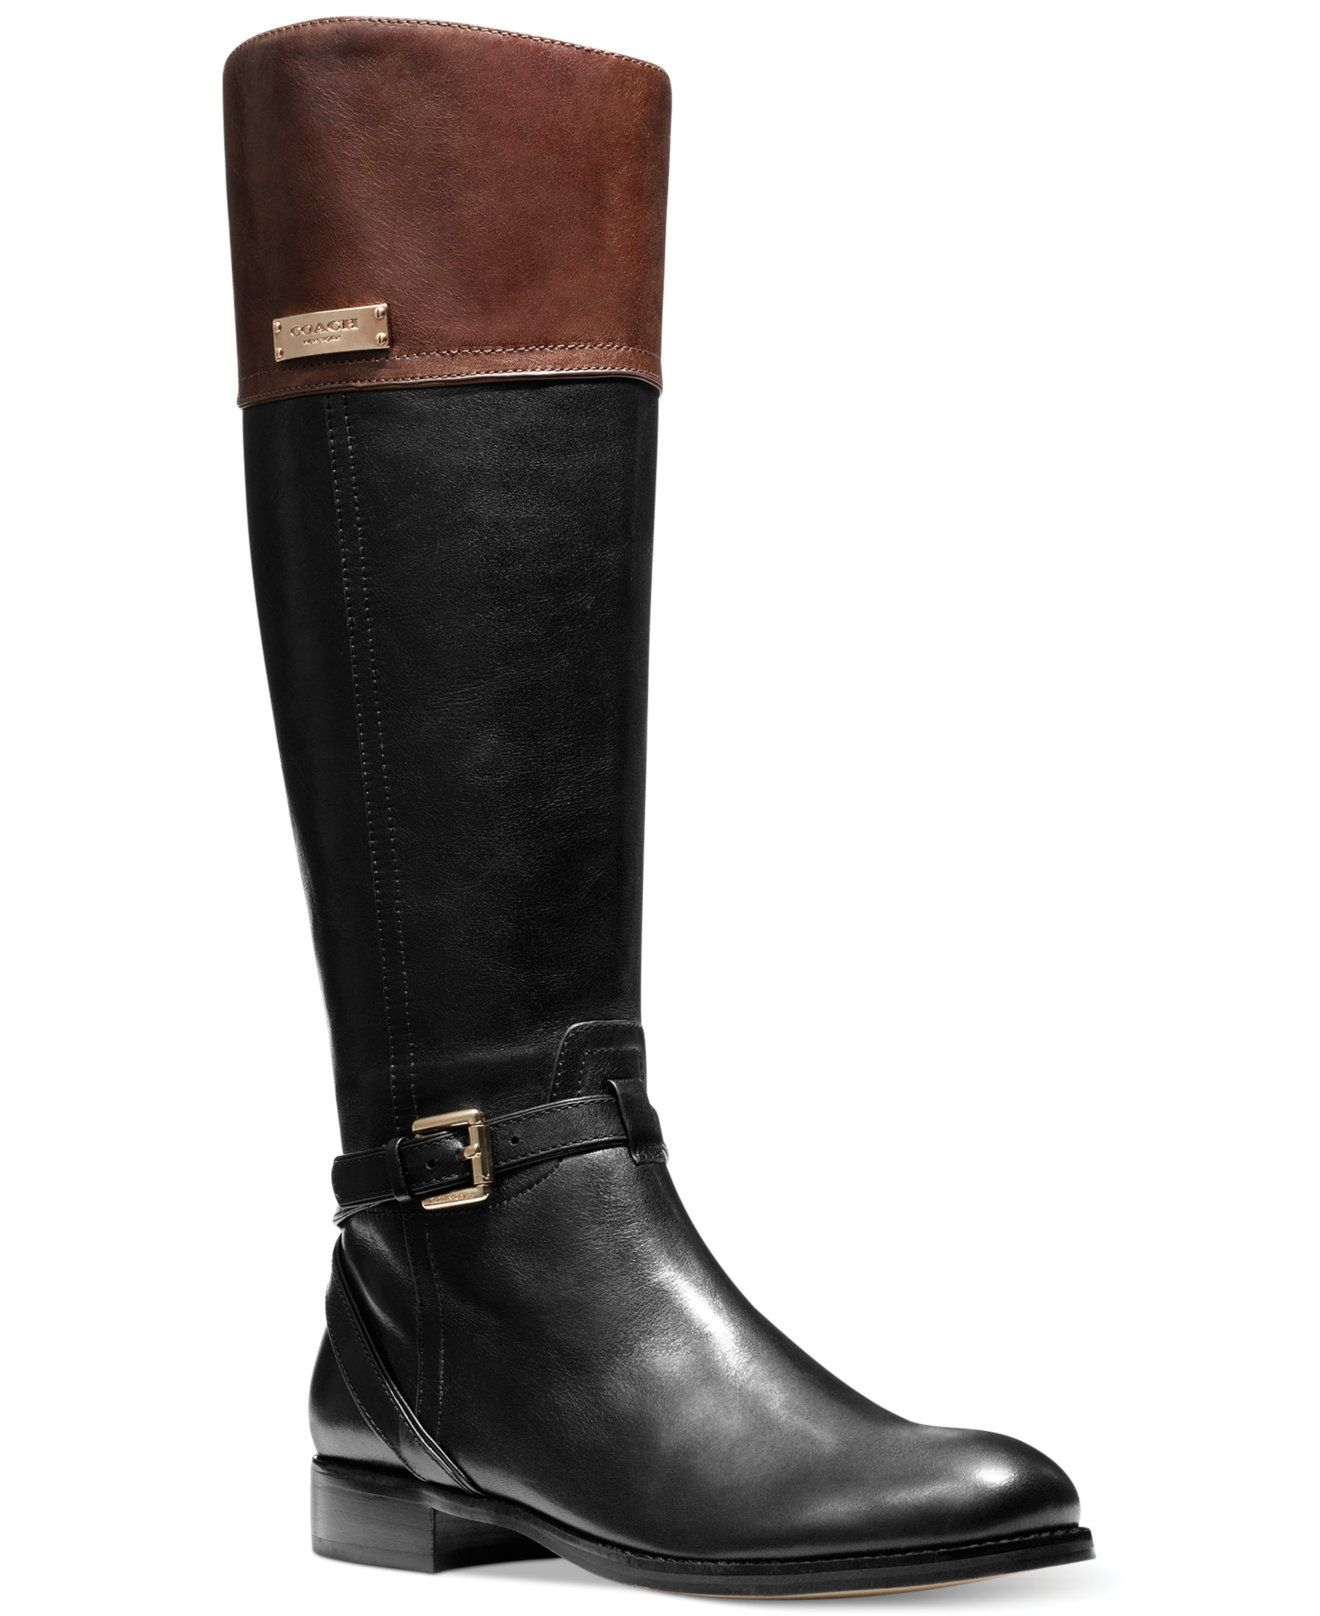 Coach Micha Boot - Boots Shoes Macy' Accessories